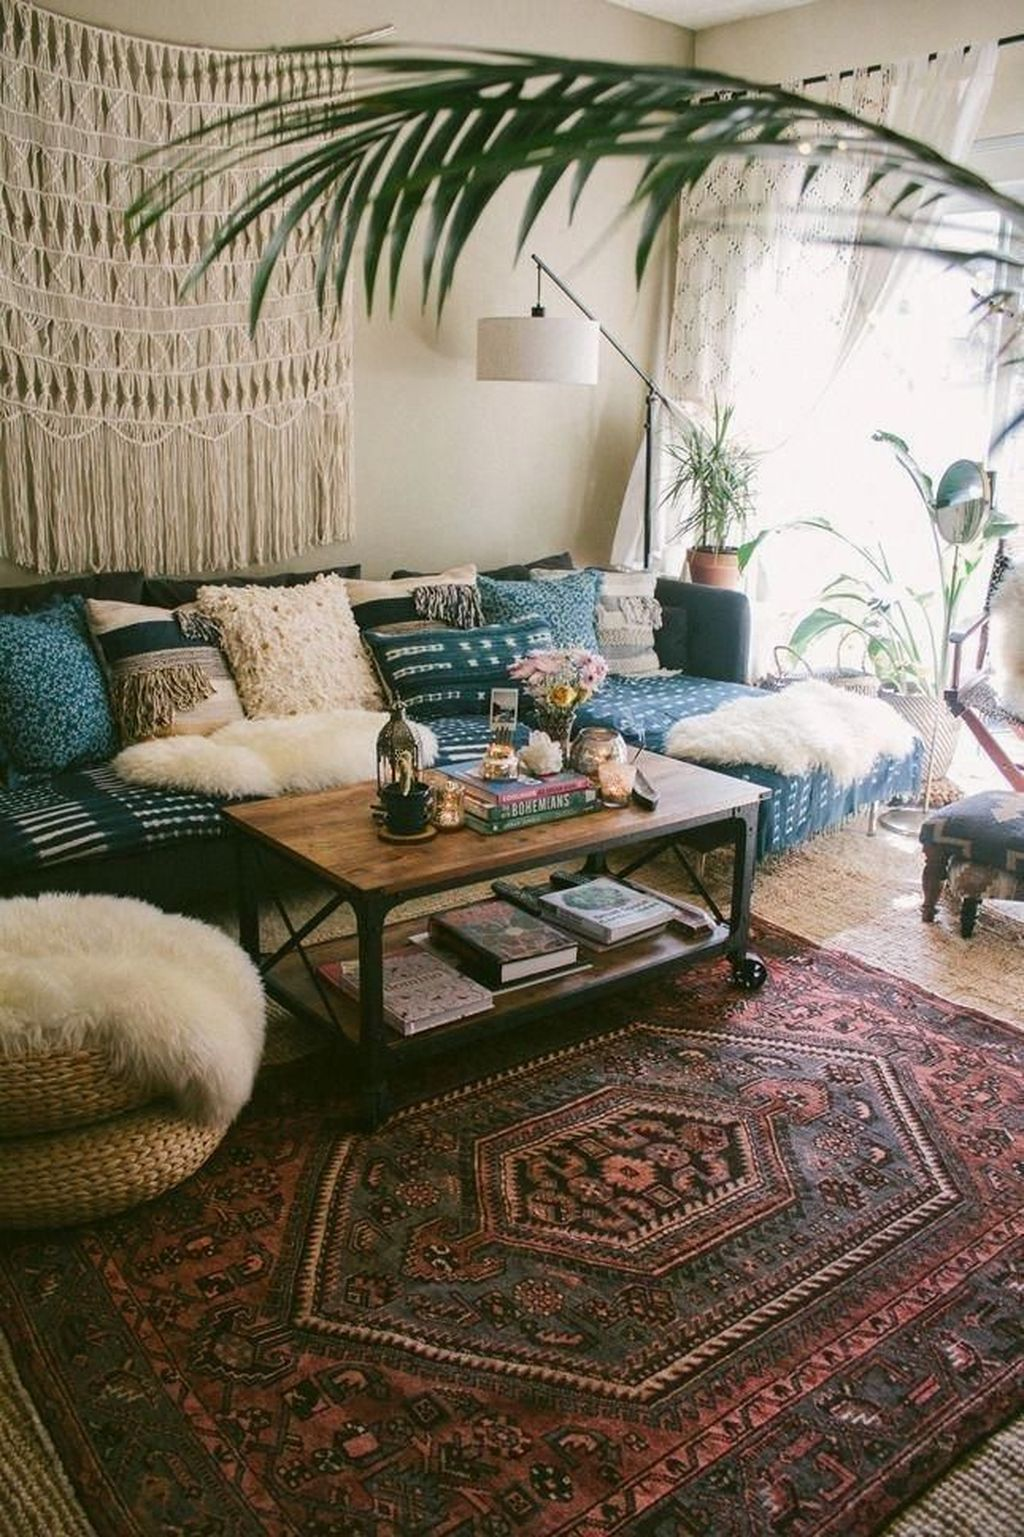 The Best Rustic Bohemian Living Room Decor Ideas 23